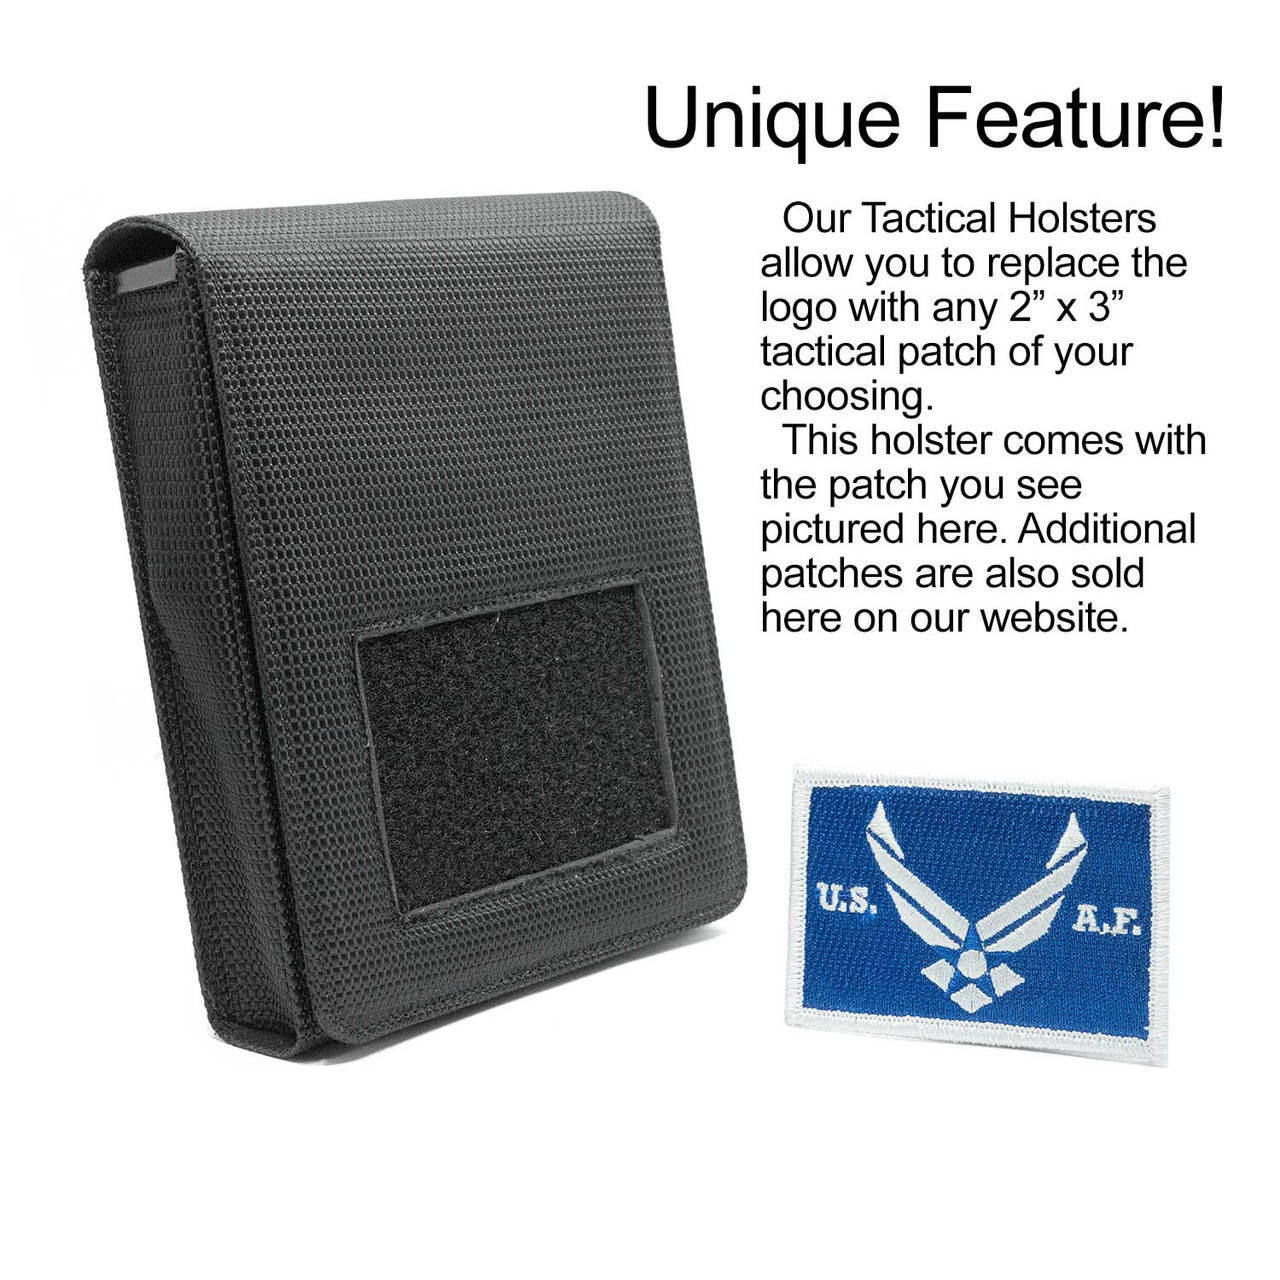 Bersa TPR9c Air Force Tactical Patch Holster